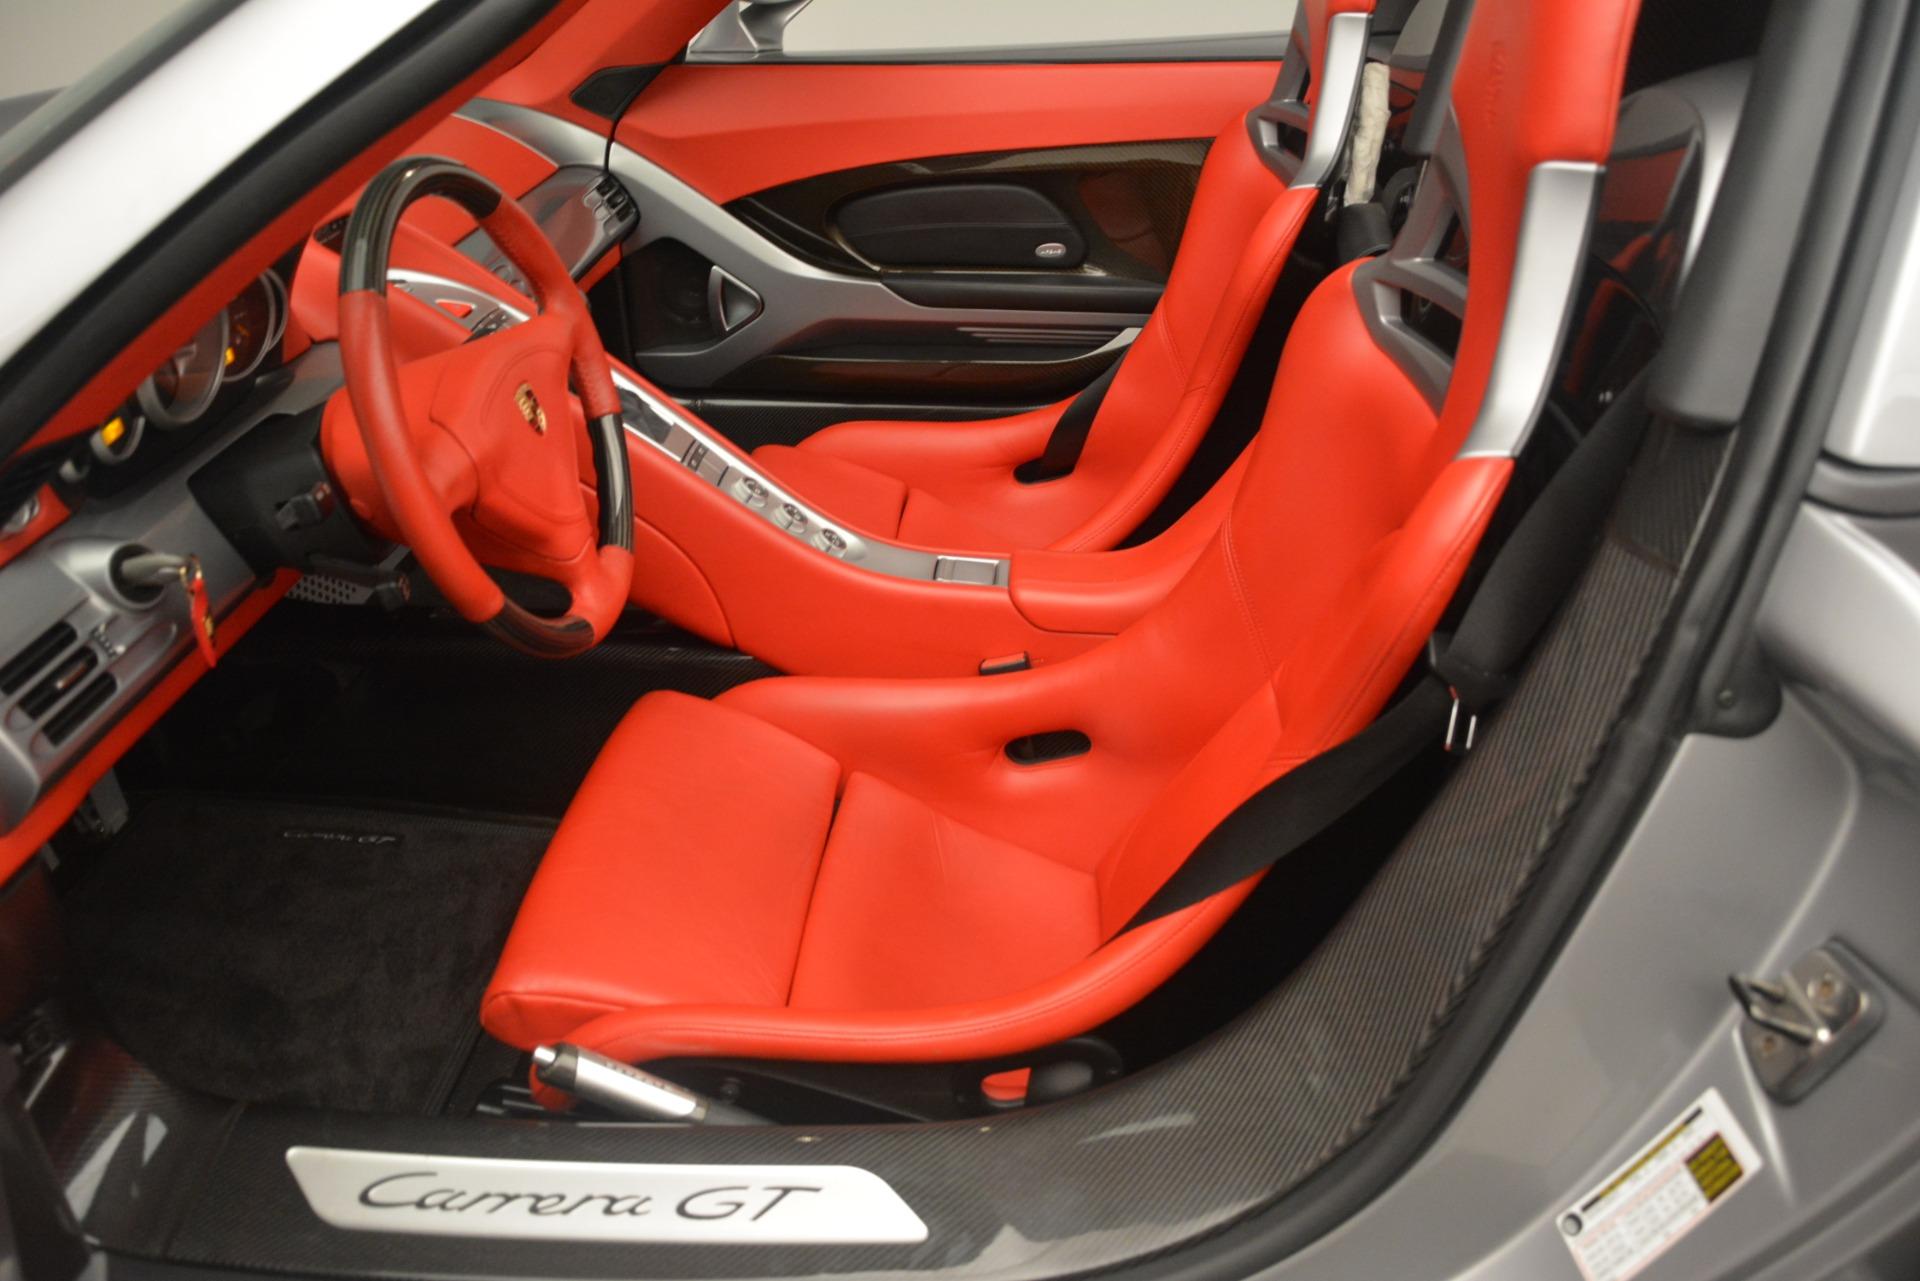 Used 2005 Porsche Carrera GT  For Sale In Westport, CT 3161_p24